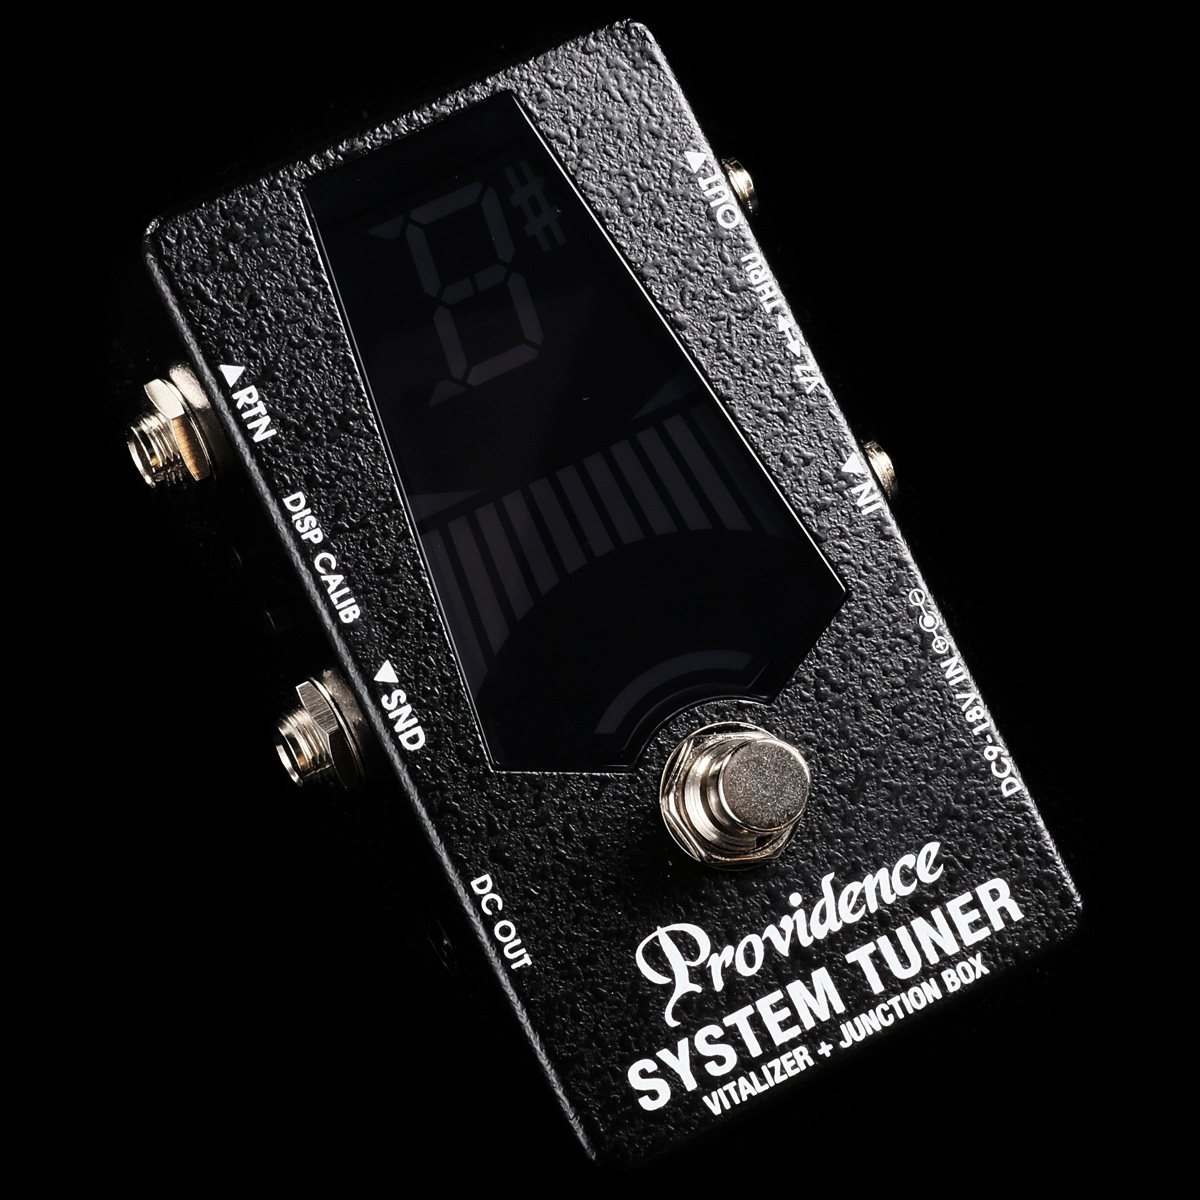 Providence / STV-1JB BLK TOTAL ROUTING SYSTEM with TUNER プロヴィデンス【渋谷店】